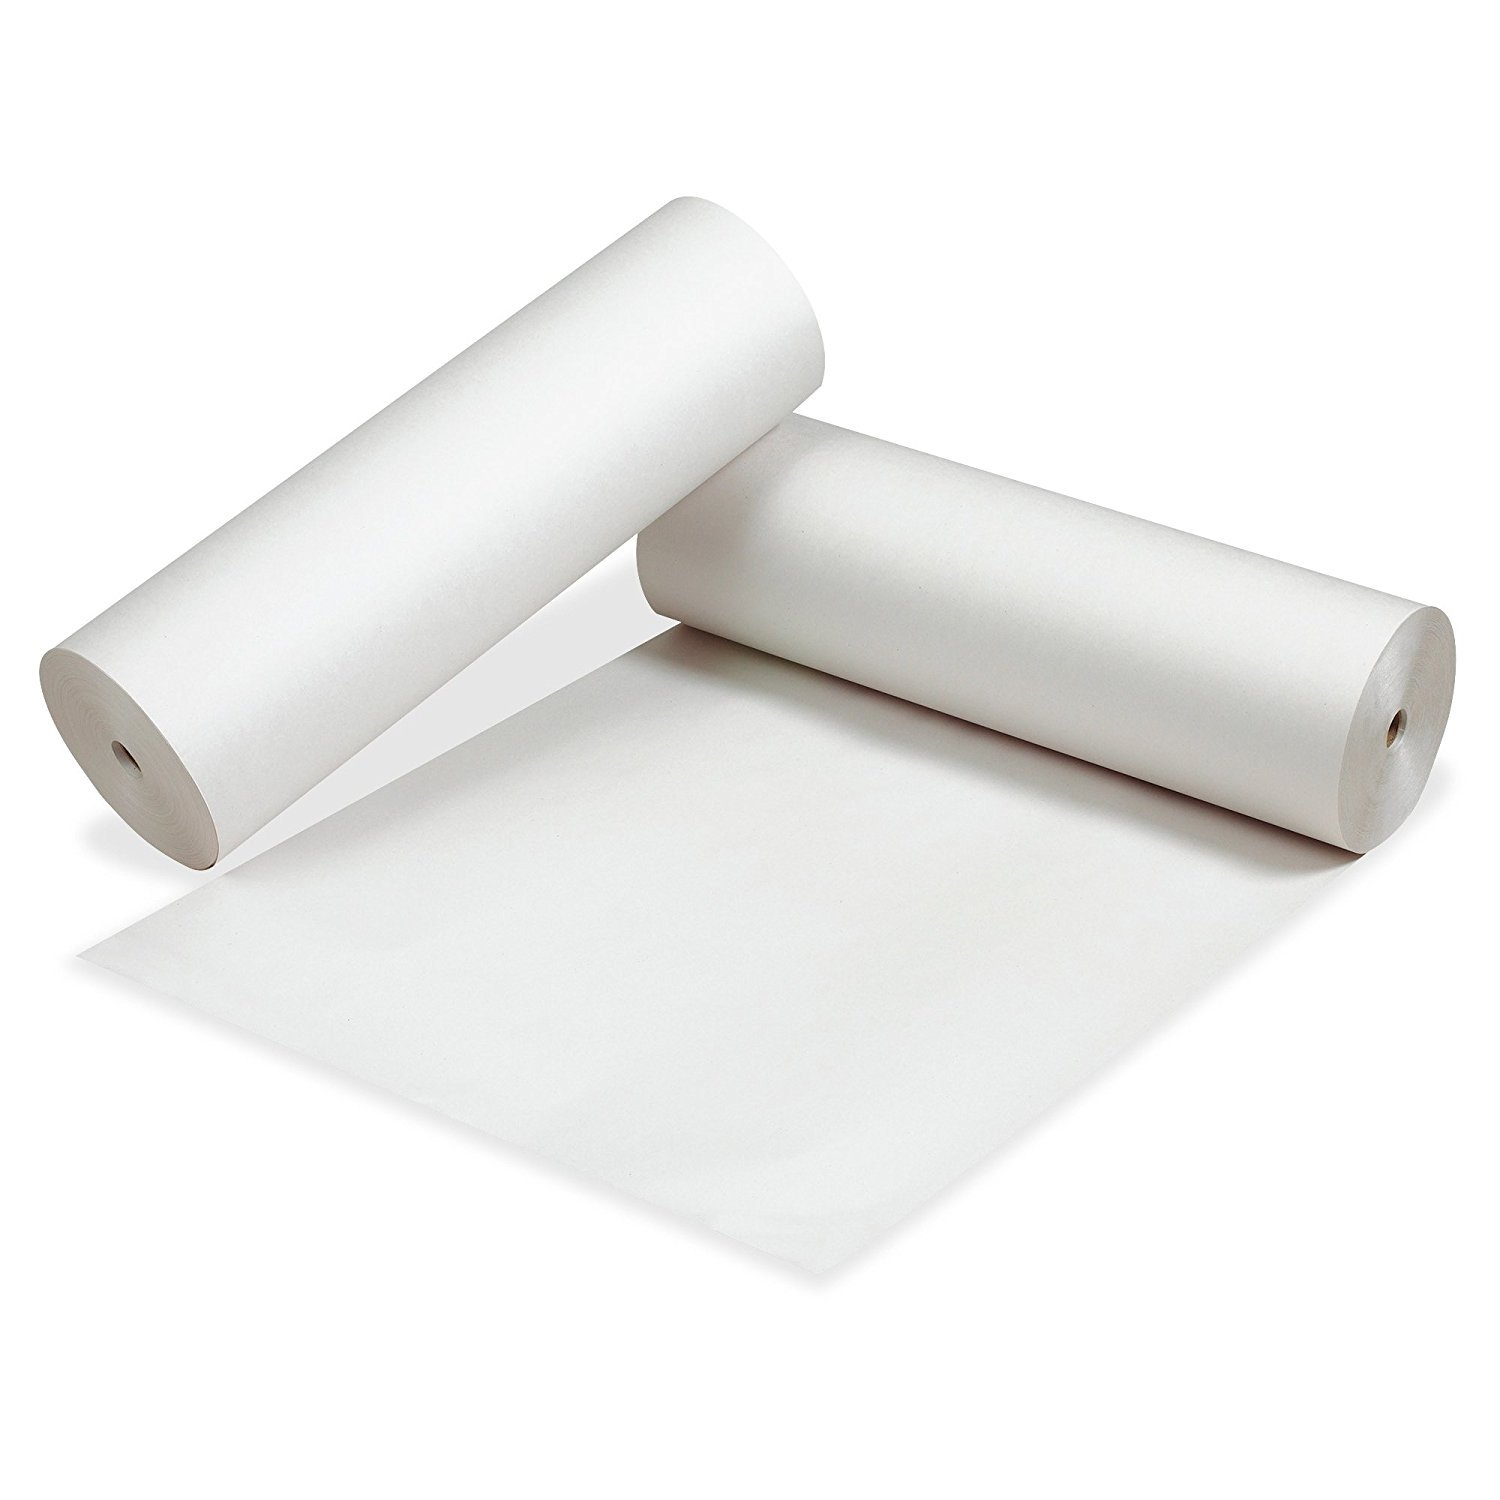 Pacon Newsprint Drawing Paper Roll, White, 2' by 1,000' (3415) by PACON